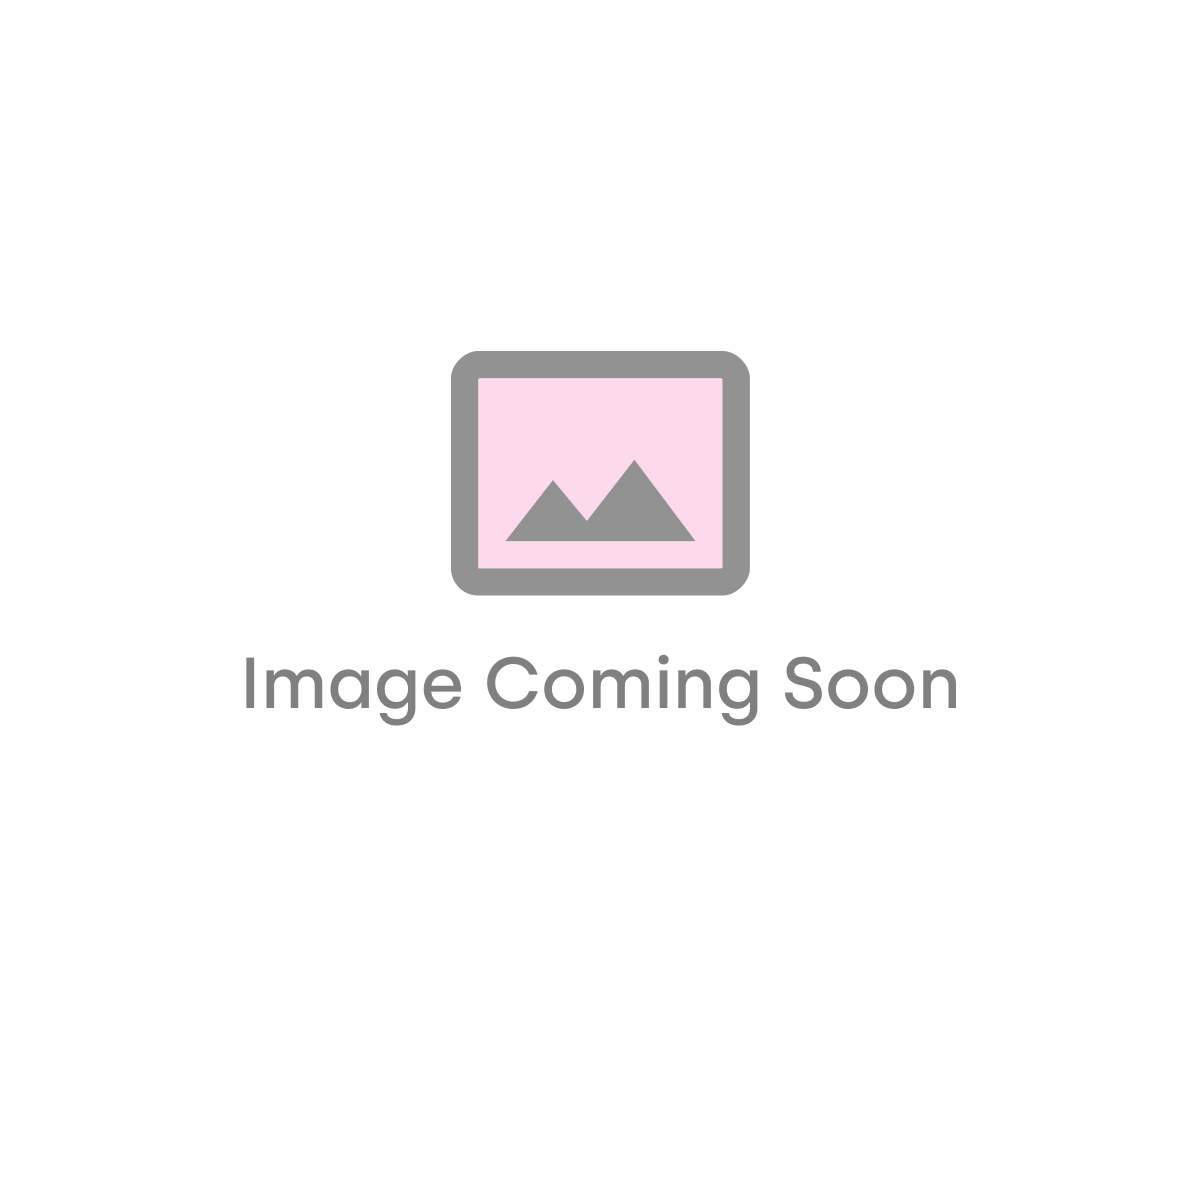 Merlyn Vivid Boost 900mm Pivot Shower Door (13761)